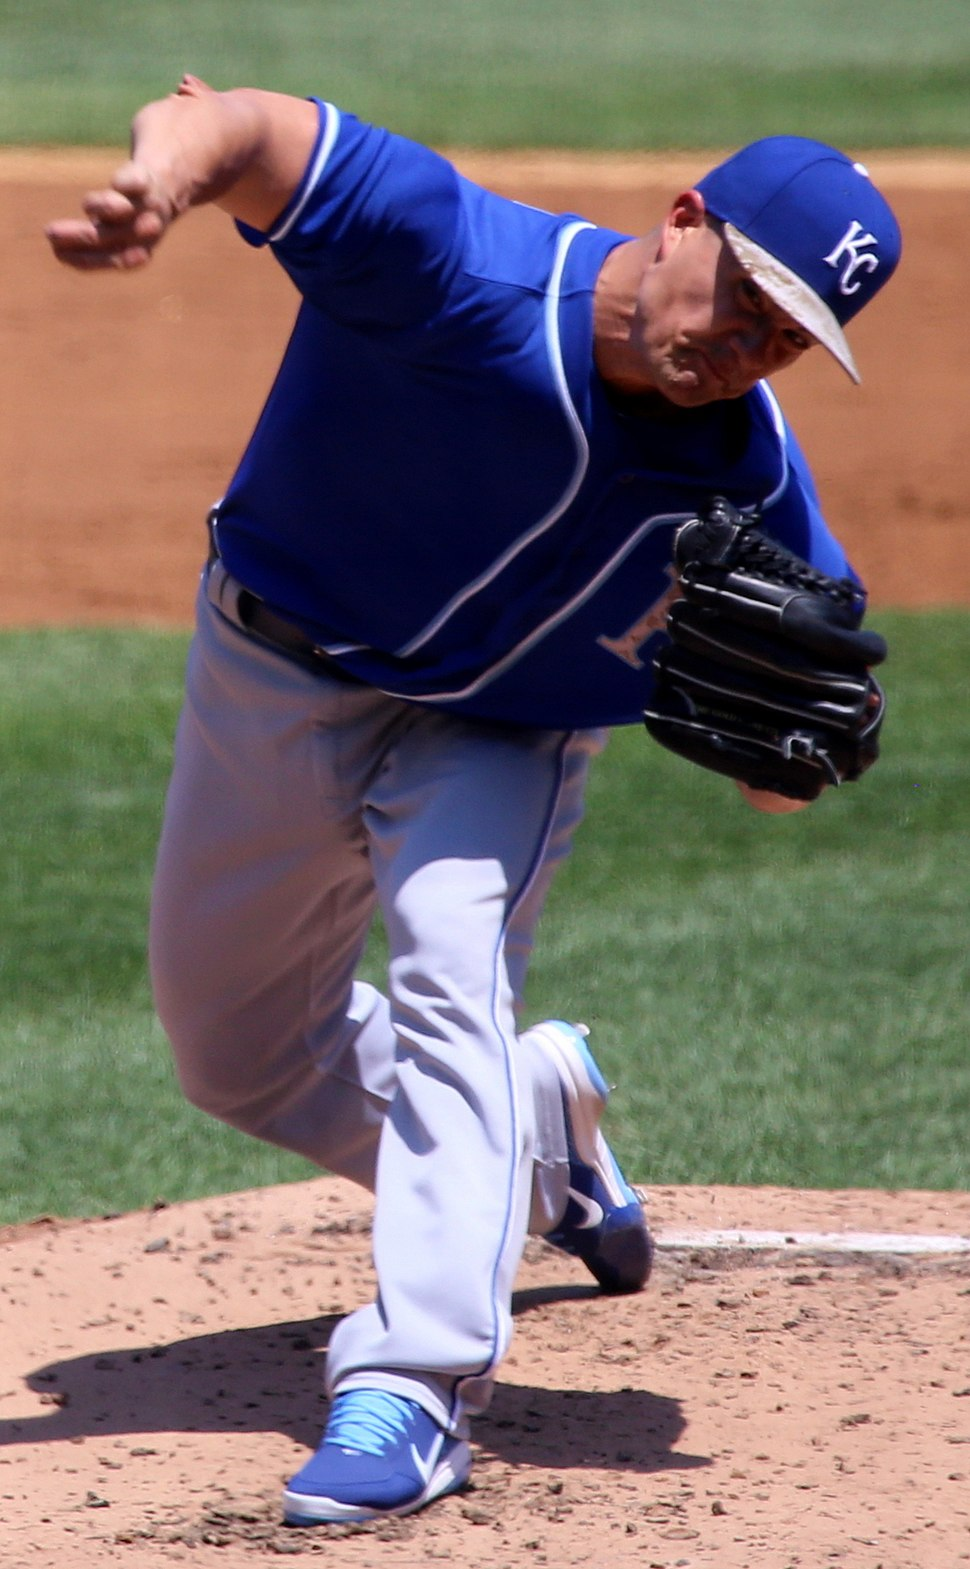 Jeremy Guthrie on May 25, 2015